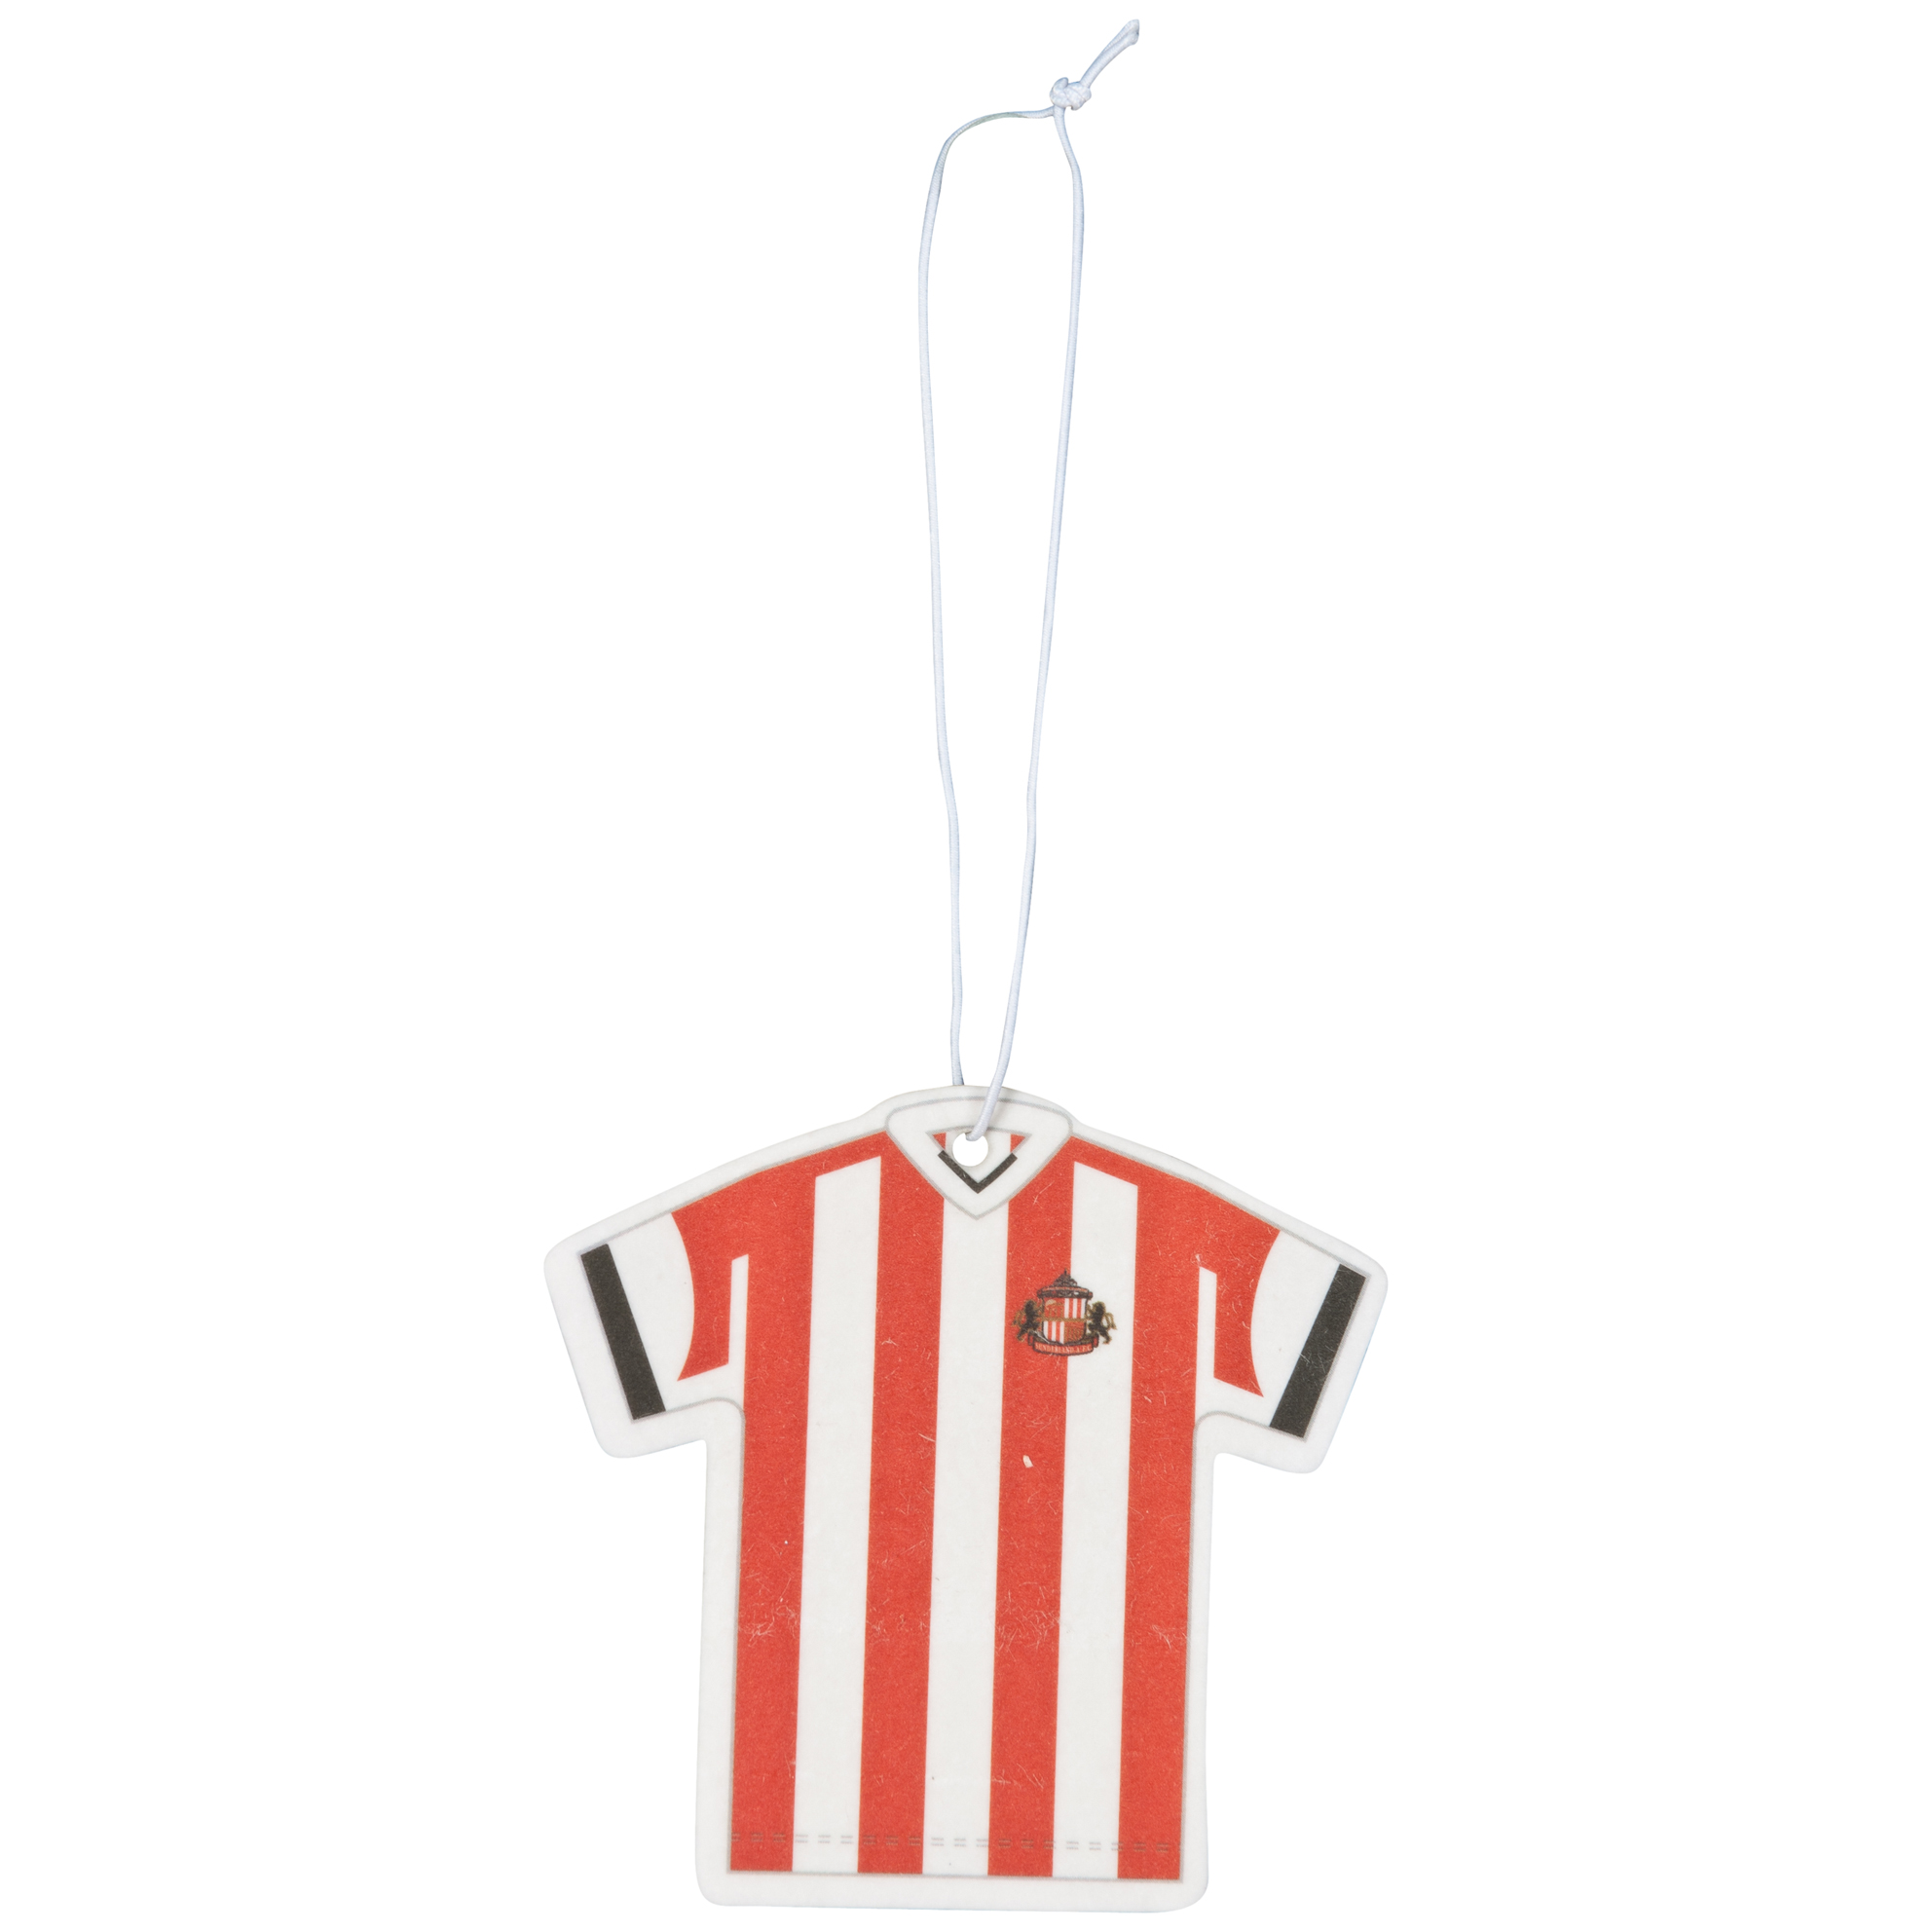 Sunderland Home Car Kit Air Freshener 2013/14